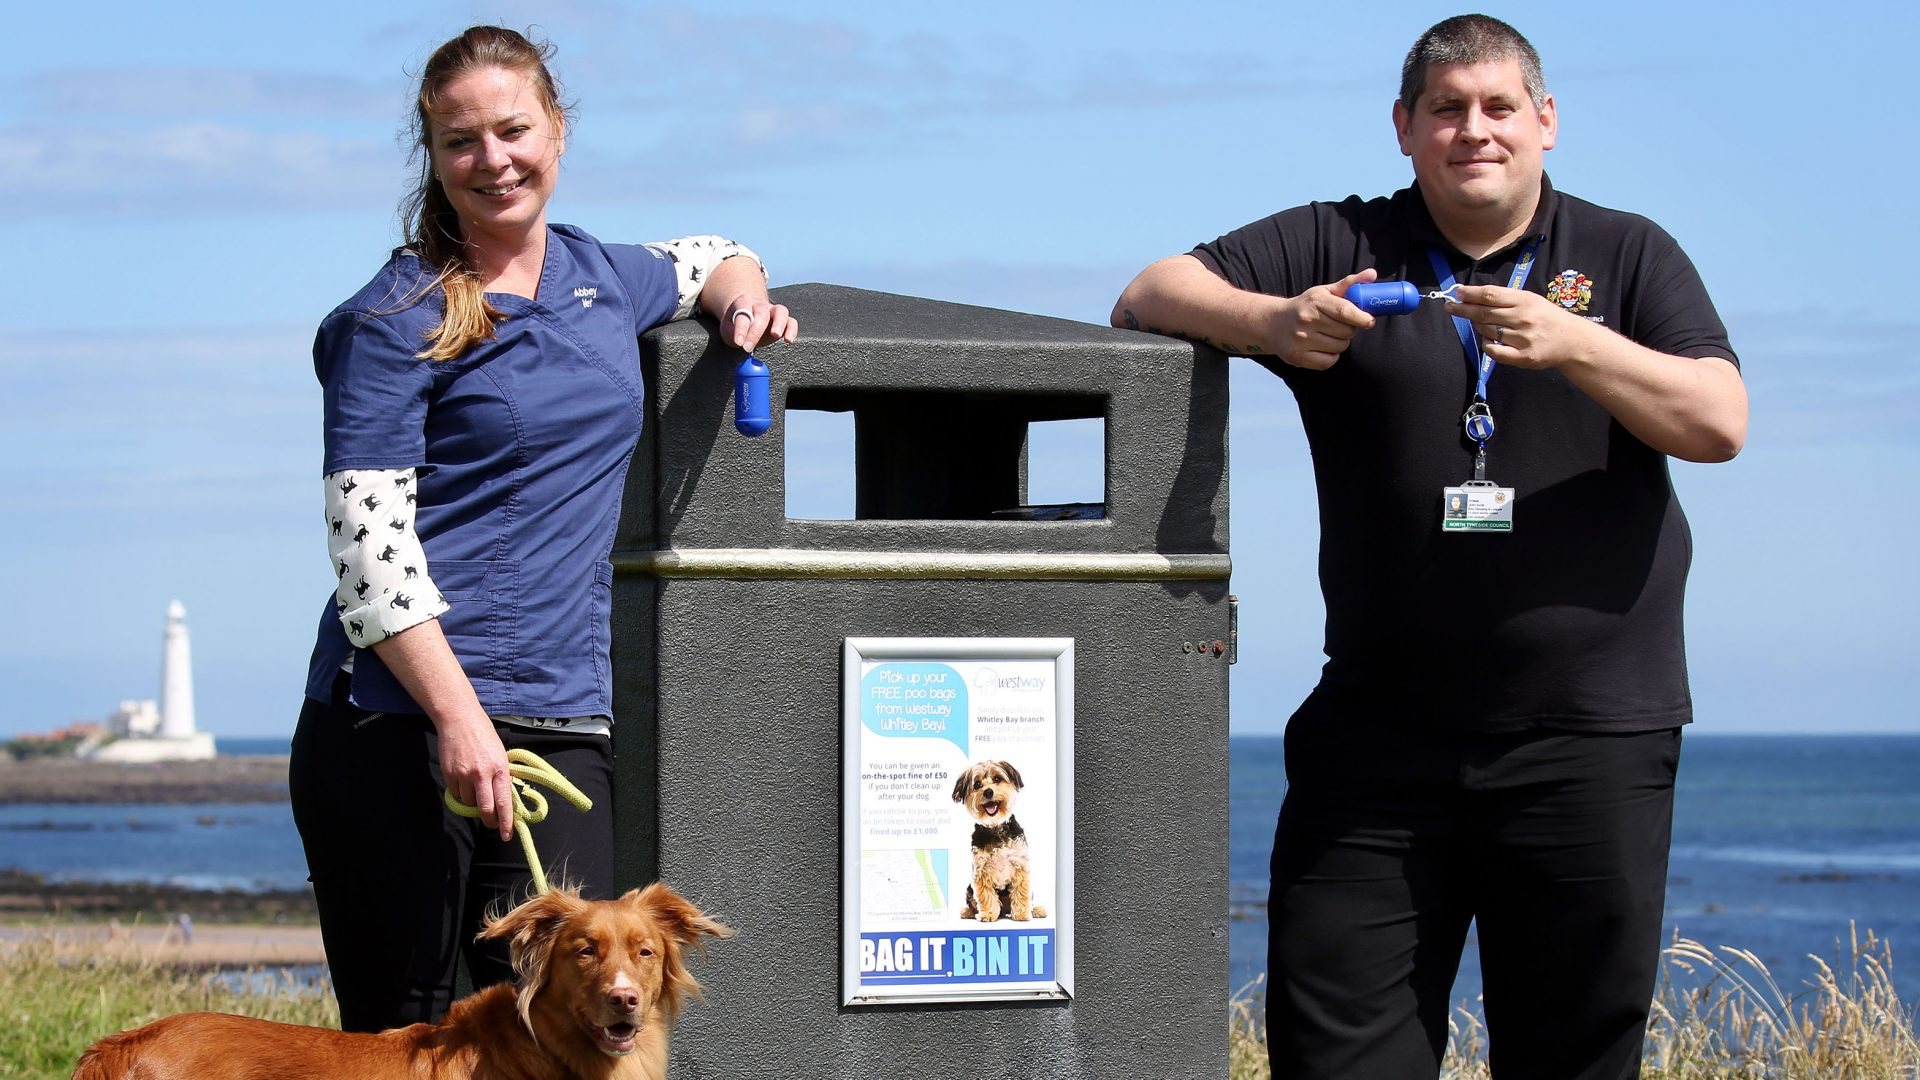 North East vets aims to flight the blight of dog poo